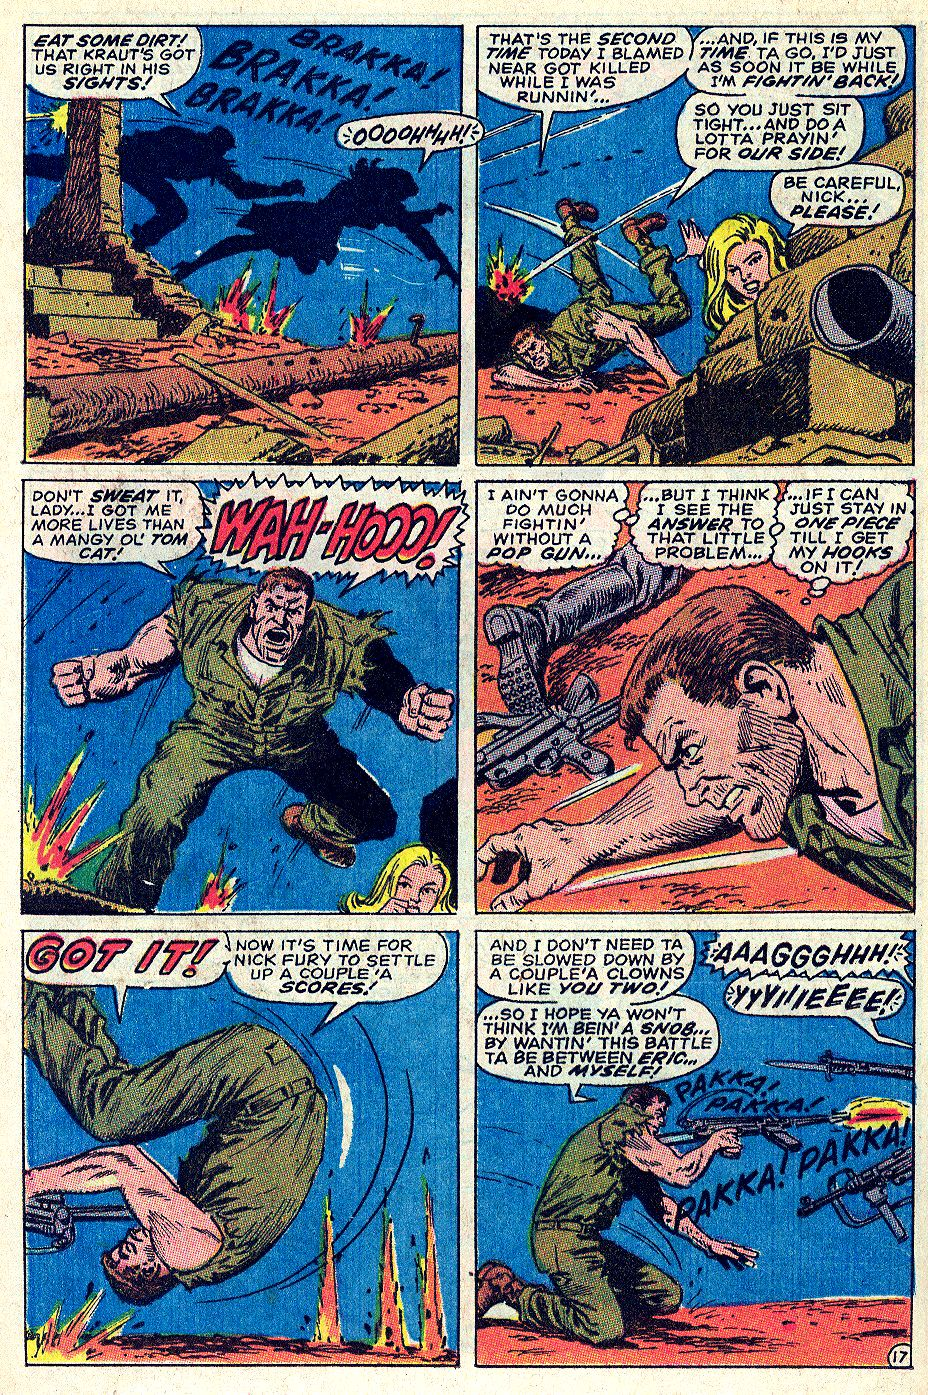 Read online Sgt. Fury comic -  Issue #66 - 24